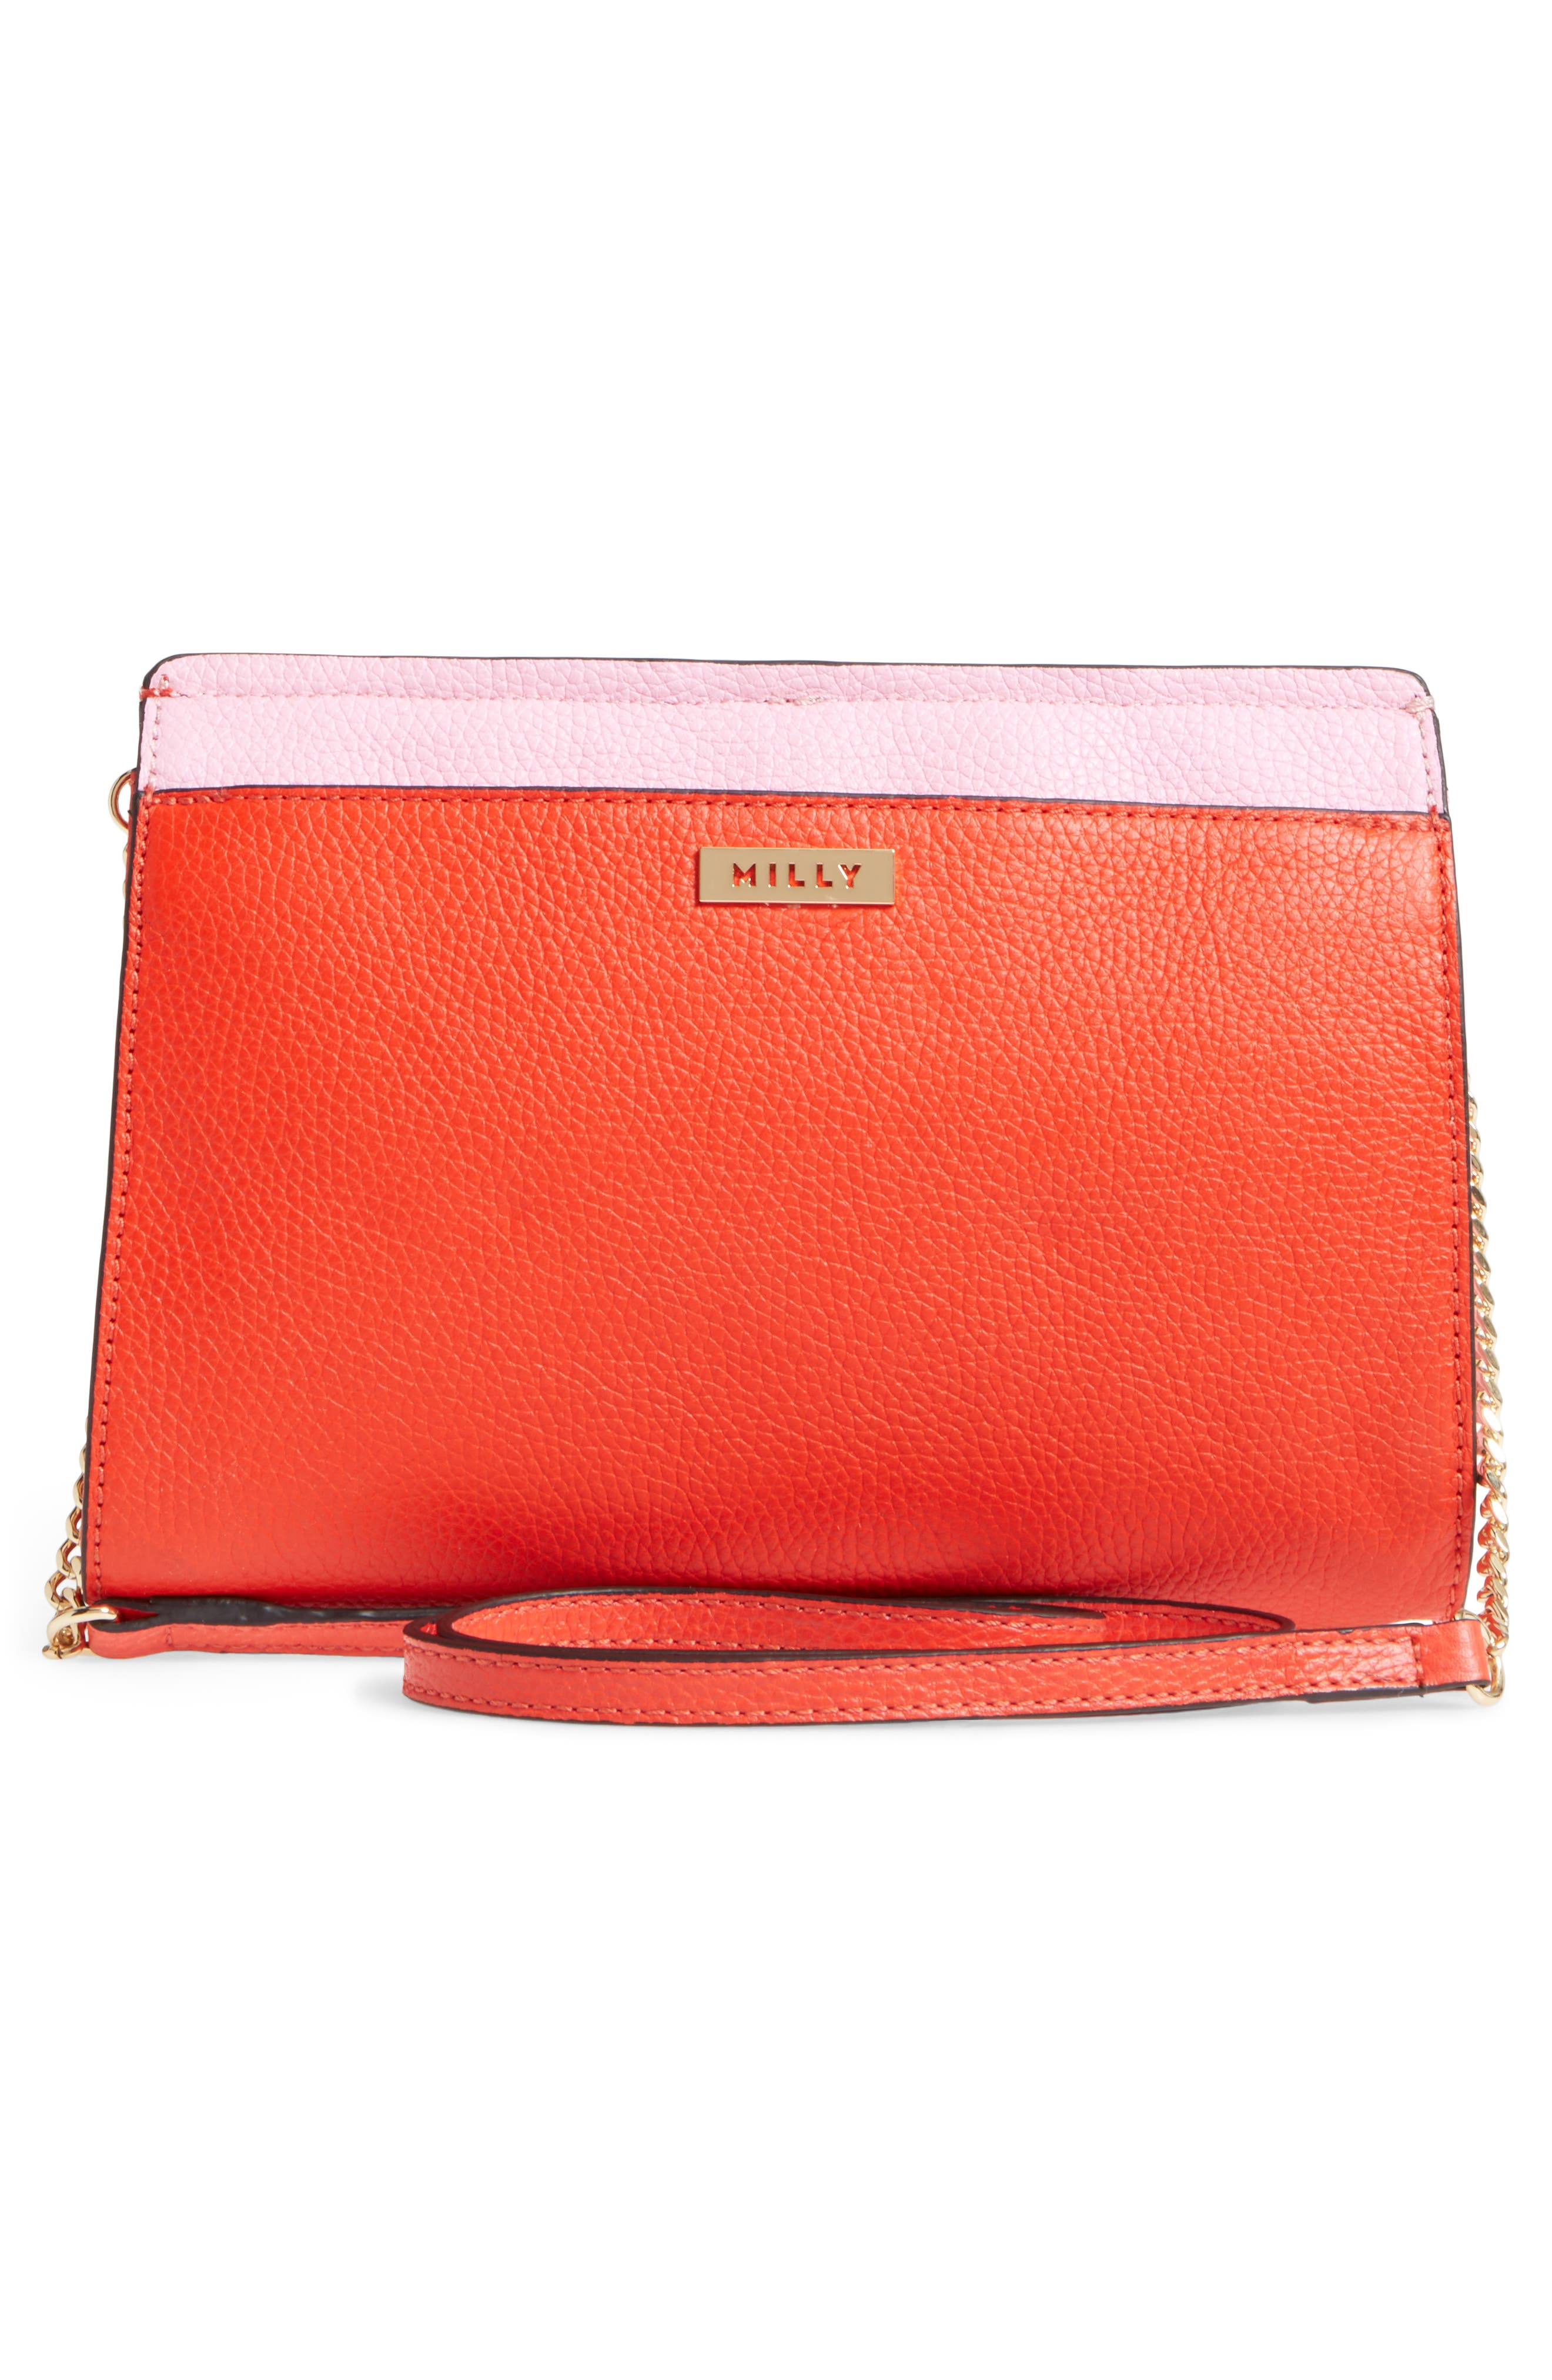 Astor Pebbled Leather Flap Clutch,                             Alternate thumbnail 12, color,